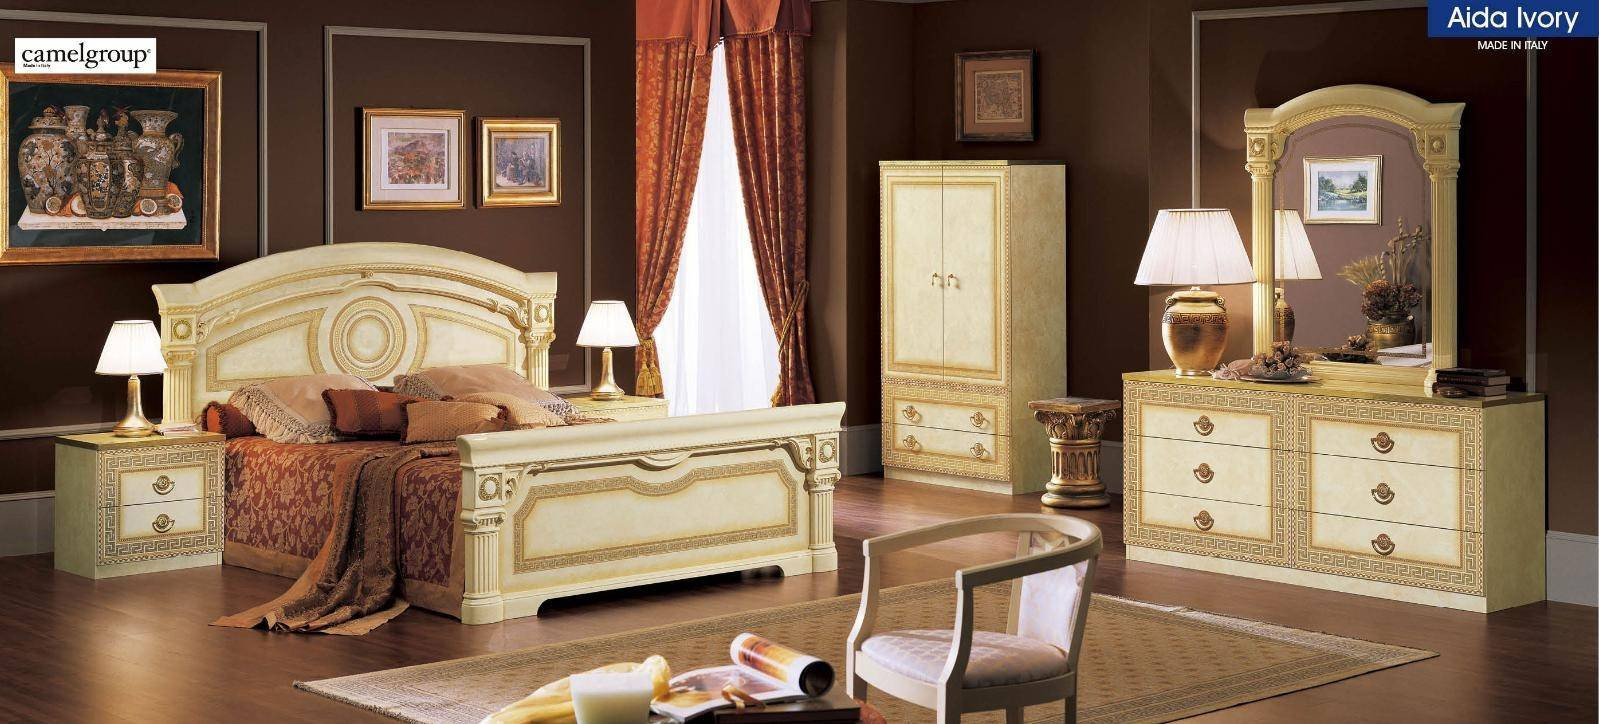 Used Queen Bedroom Set Lovely Esf Aida Ivory Gold Lacquer Finish Queen Bedroom Set 5ps